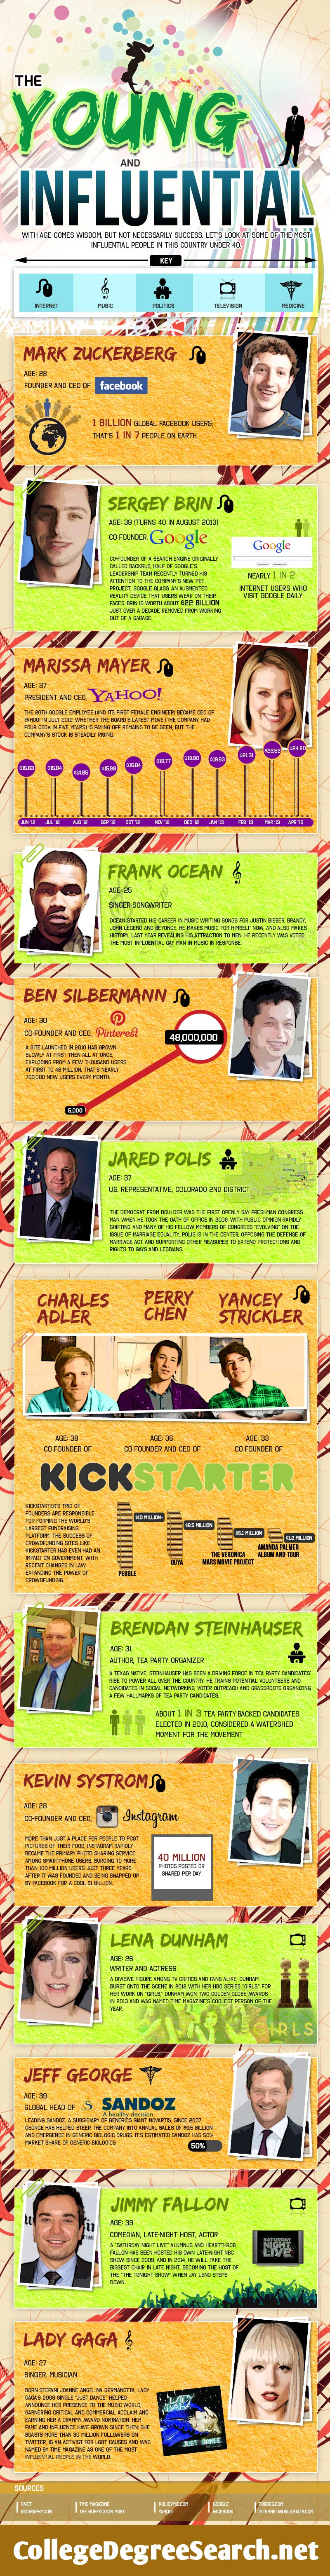 American Young Leaders-Infographic